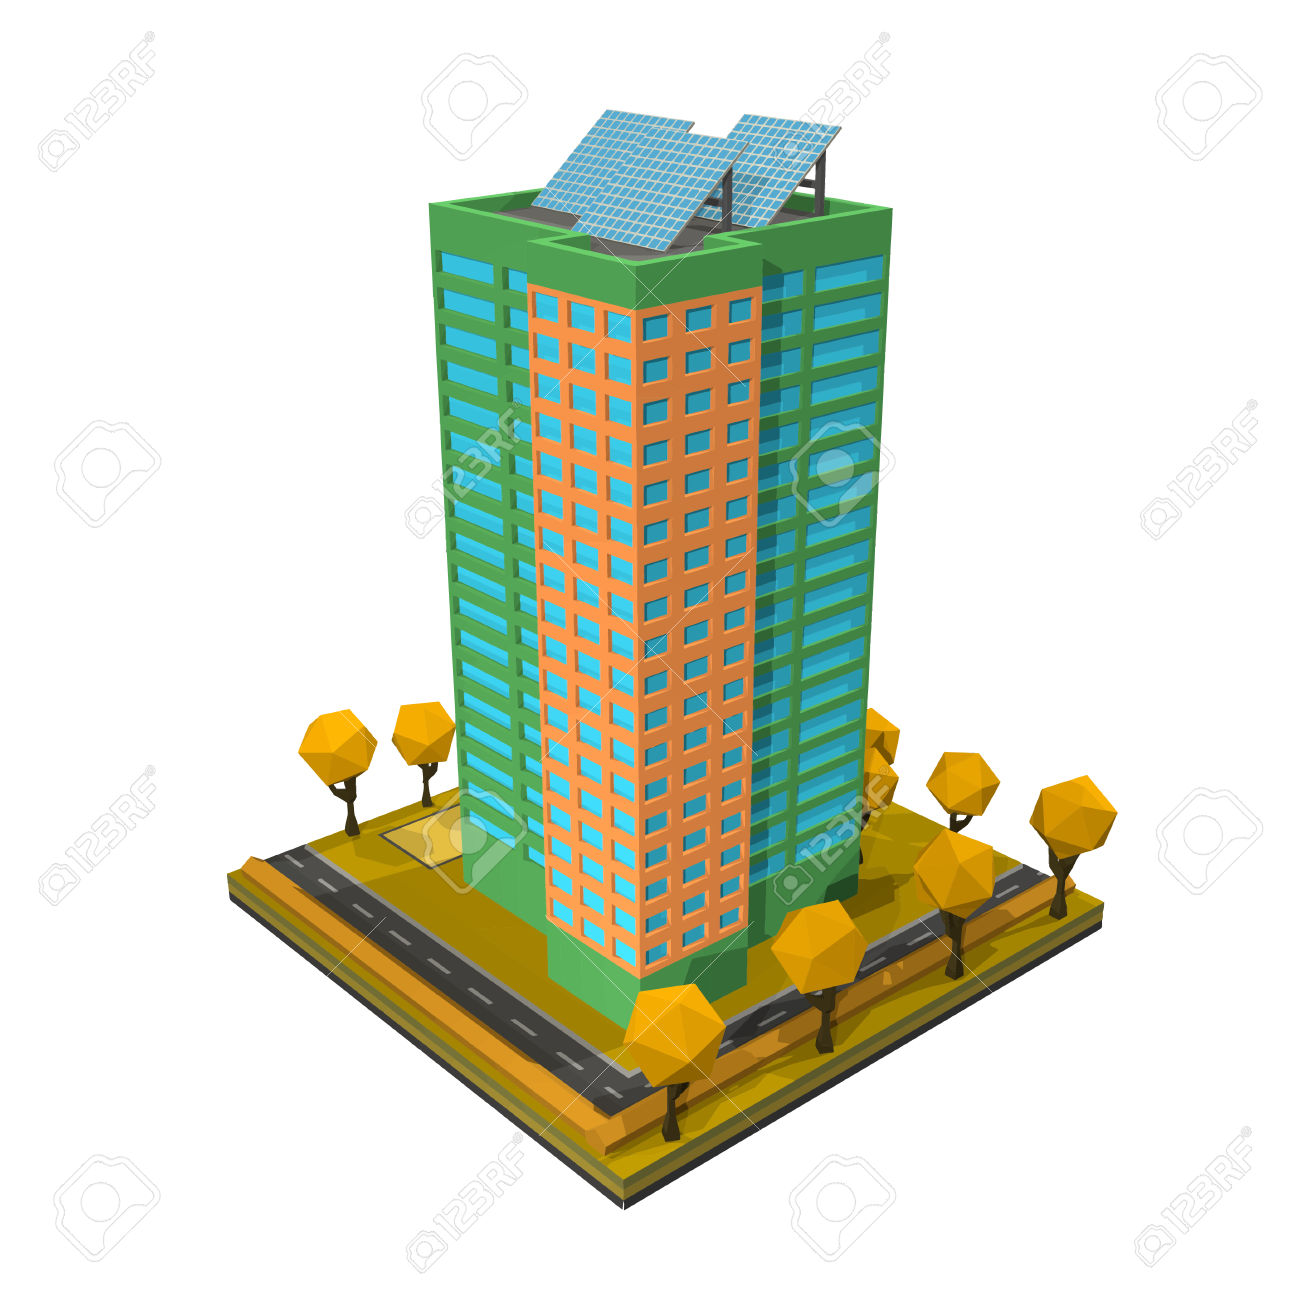 Free download best . Apartment clipart residential building